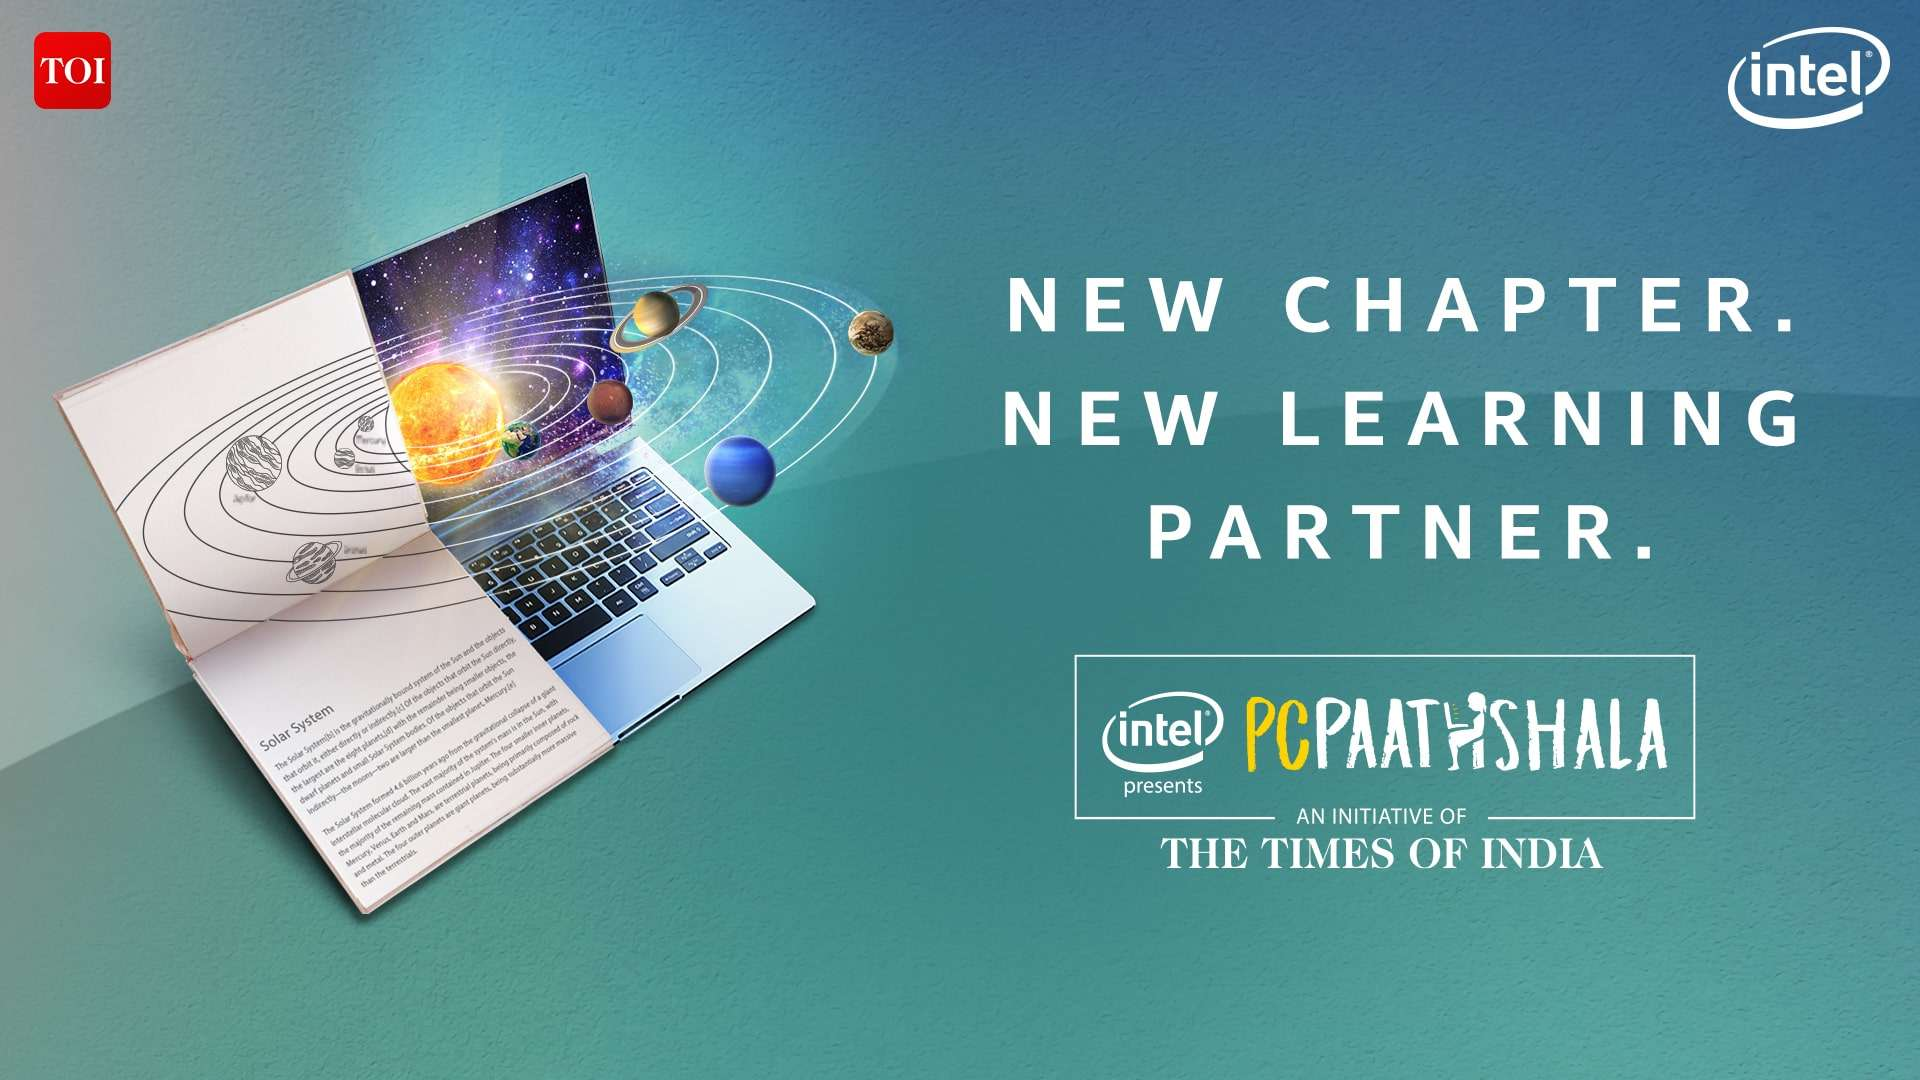 TOI launches PC Paathshala in association with Intel